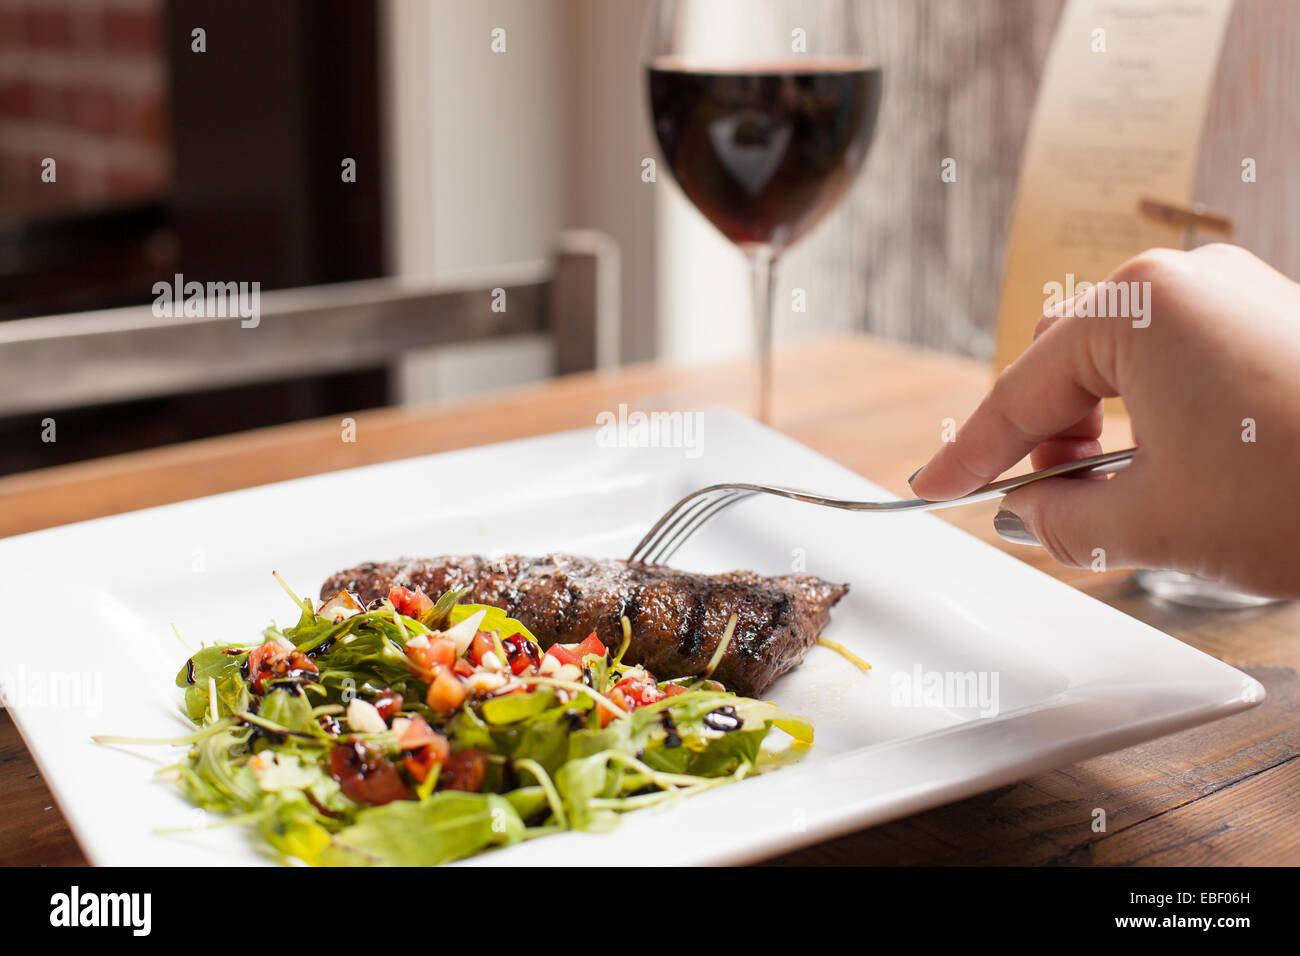 Female hand with fork and grilled steak with red wine - Stock Image